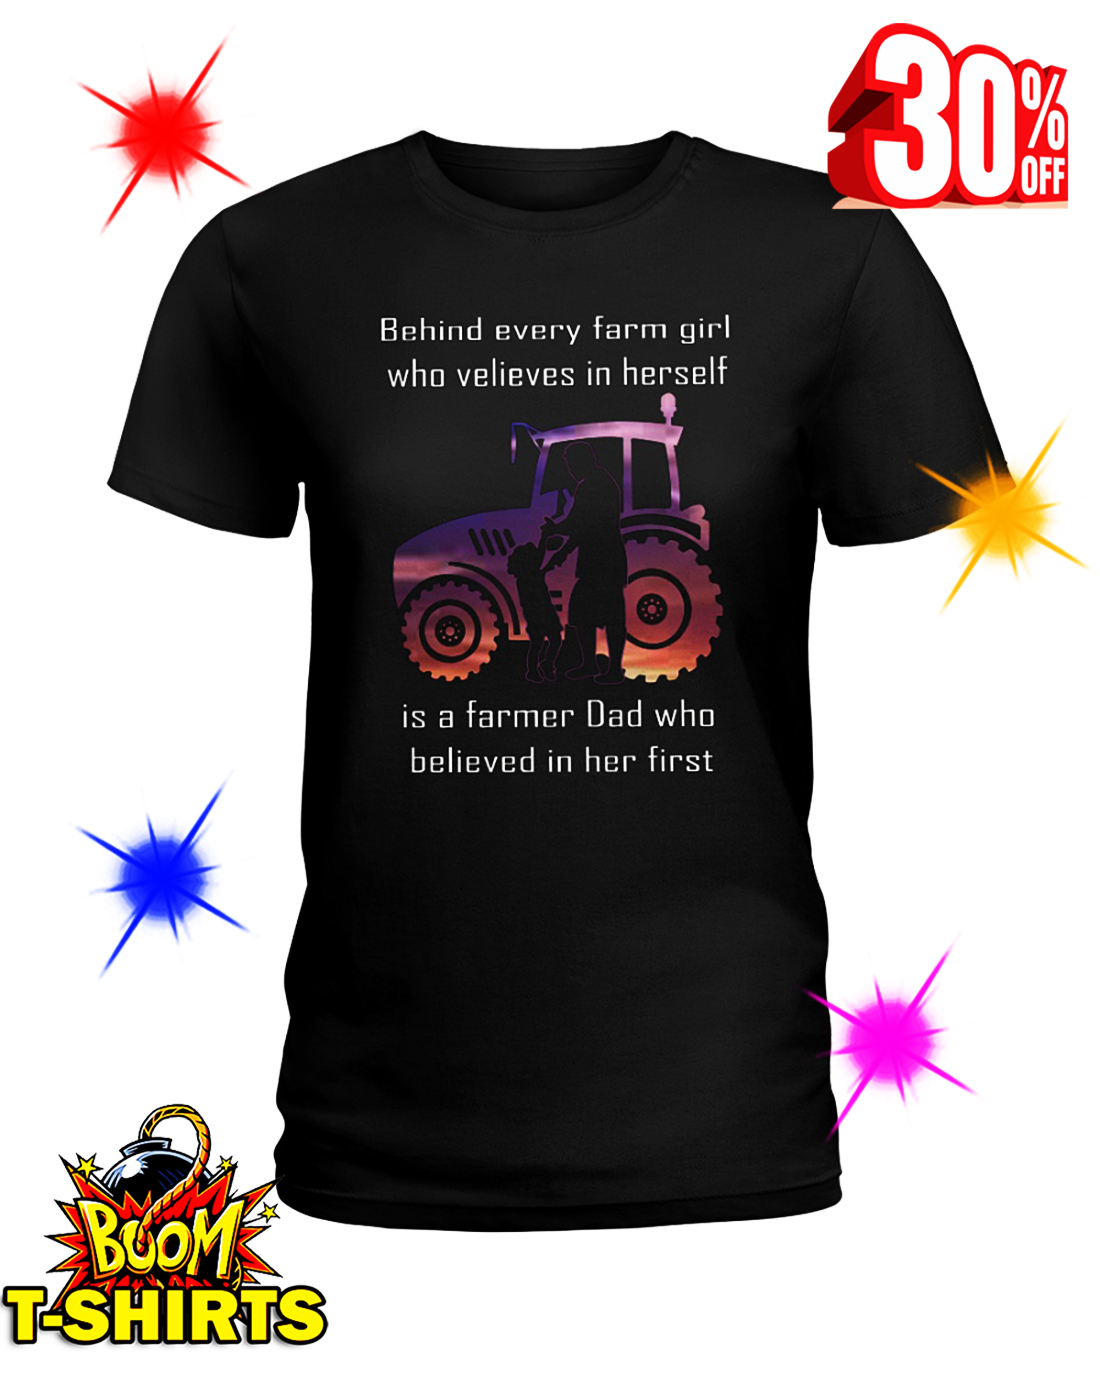 Behind Every Farm Girl Who Believes In Herself Is A Farmer Dad Who Believed In Her First shirt